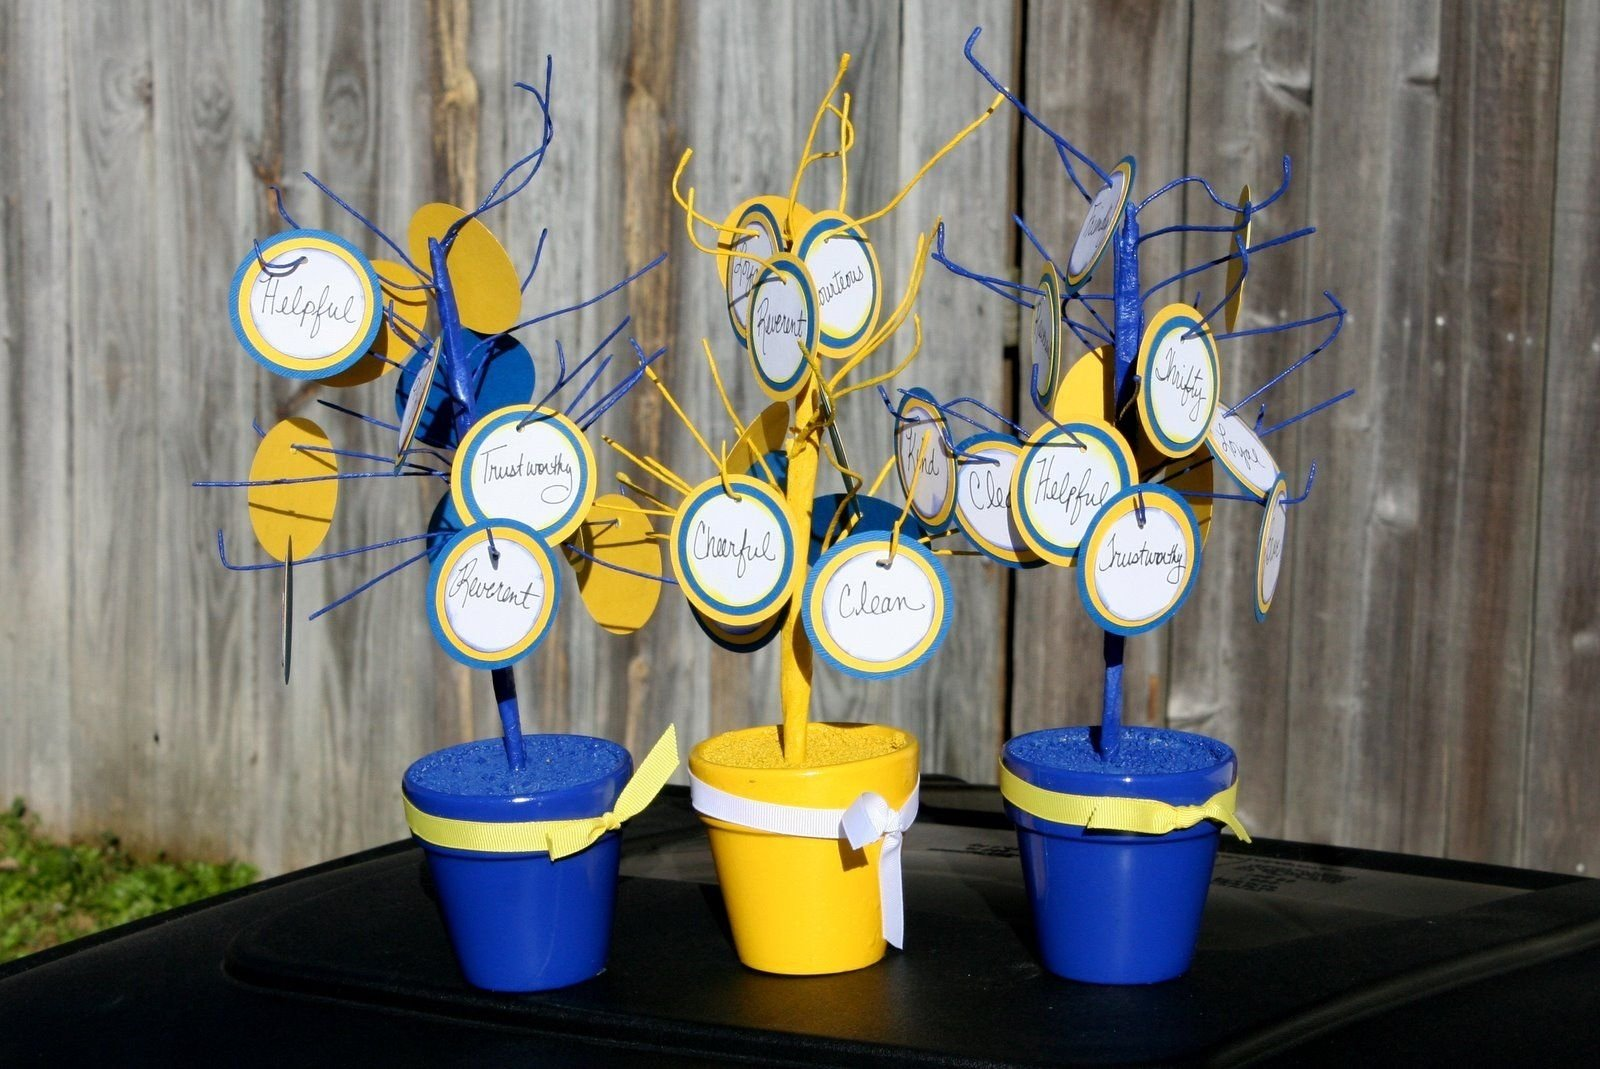 10 Fantastic Cub Scout Blue And Gold Ideas lindylu designs cub scout blue and gold banquet centerpieces spray